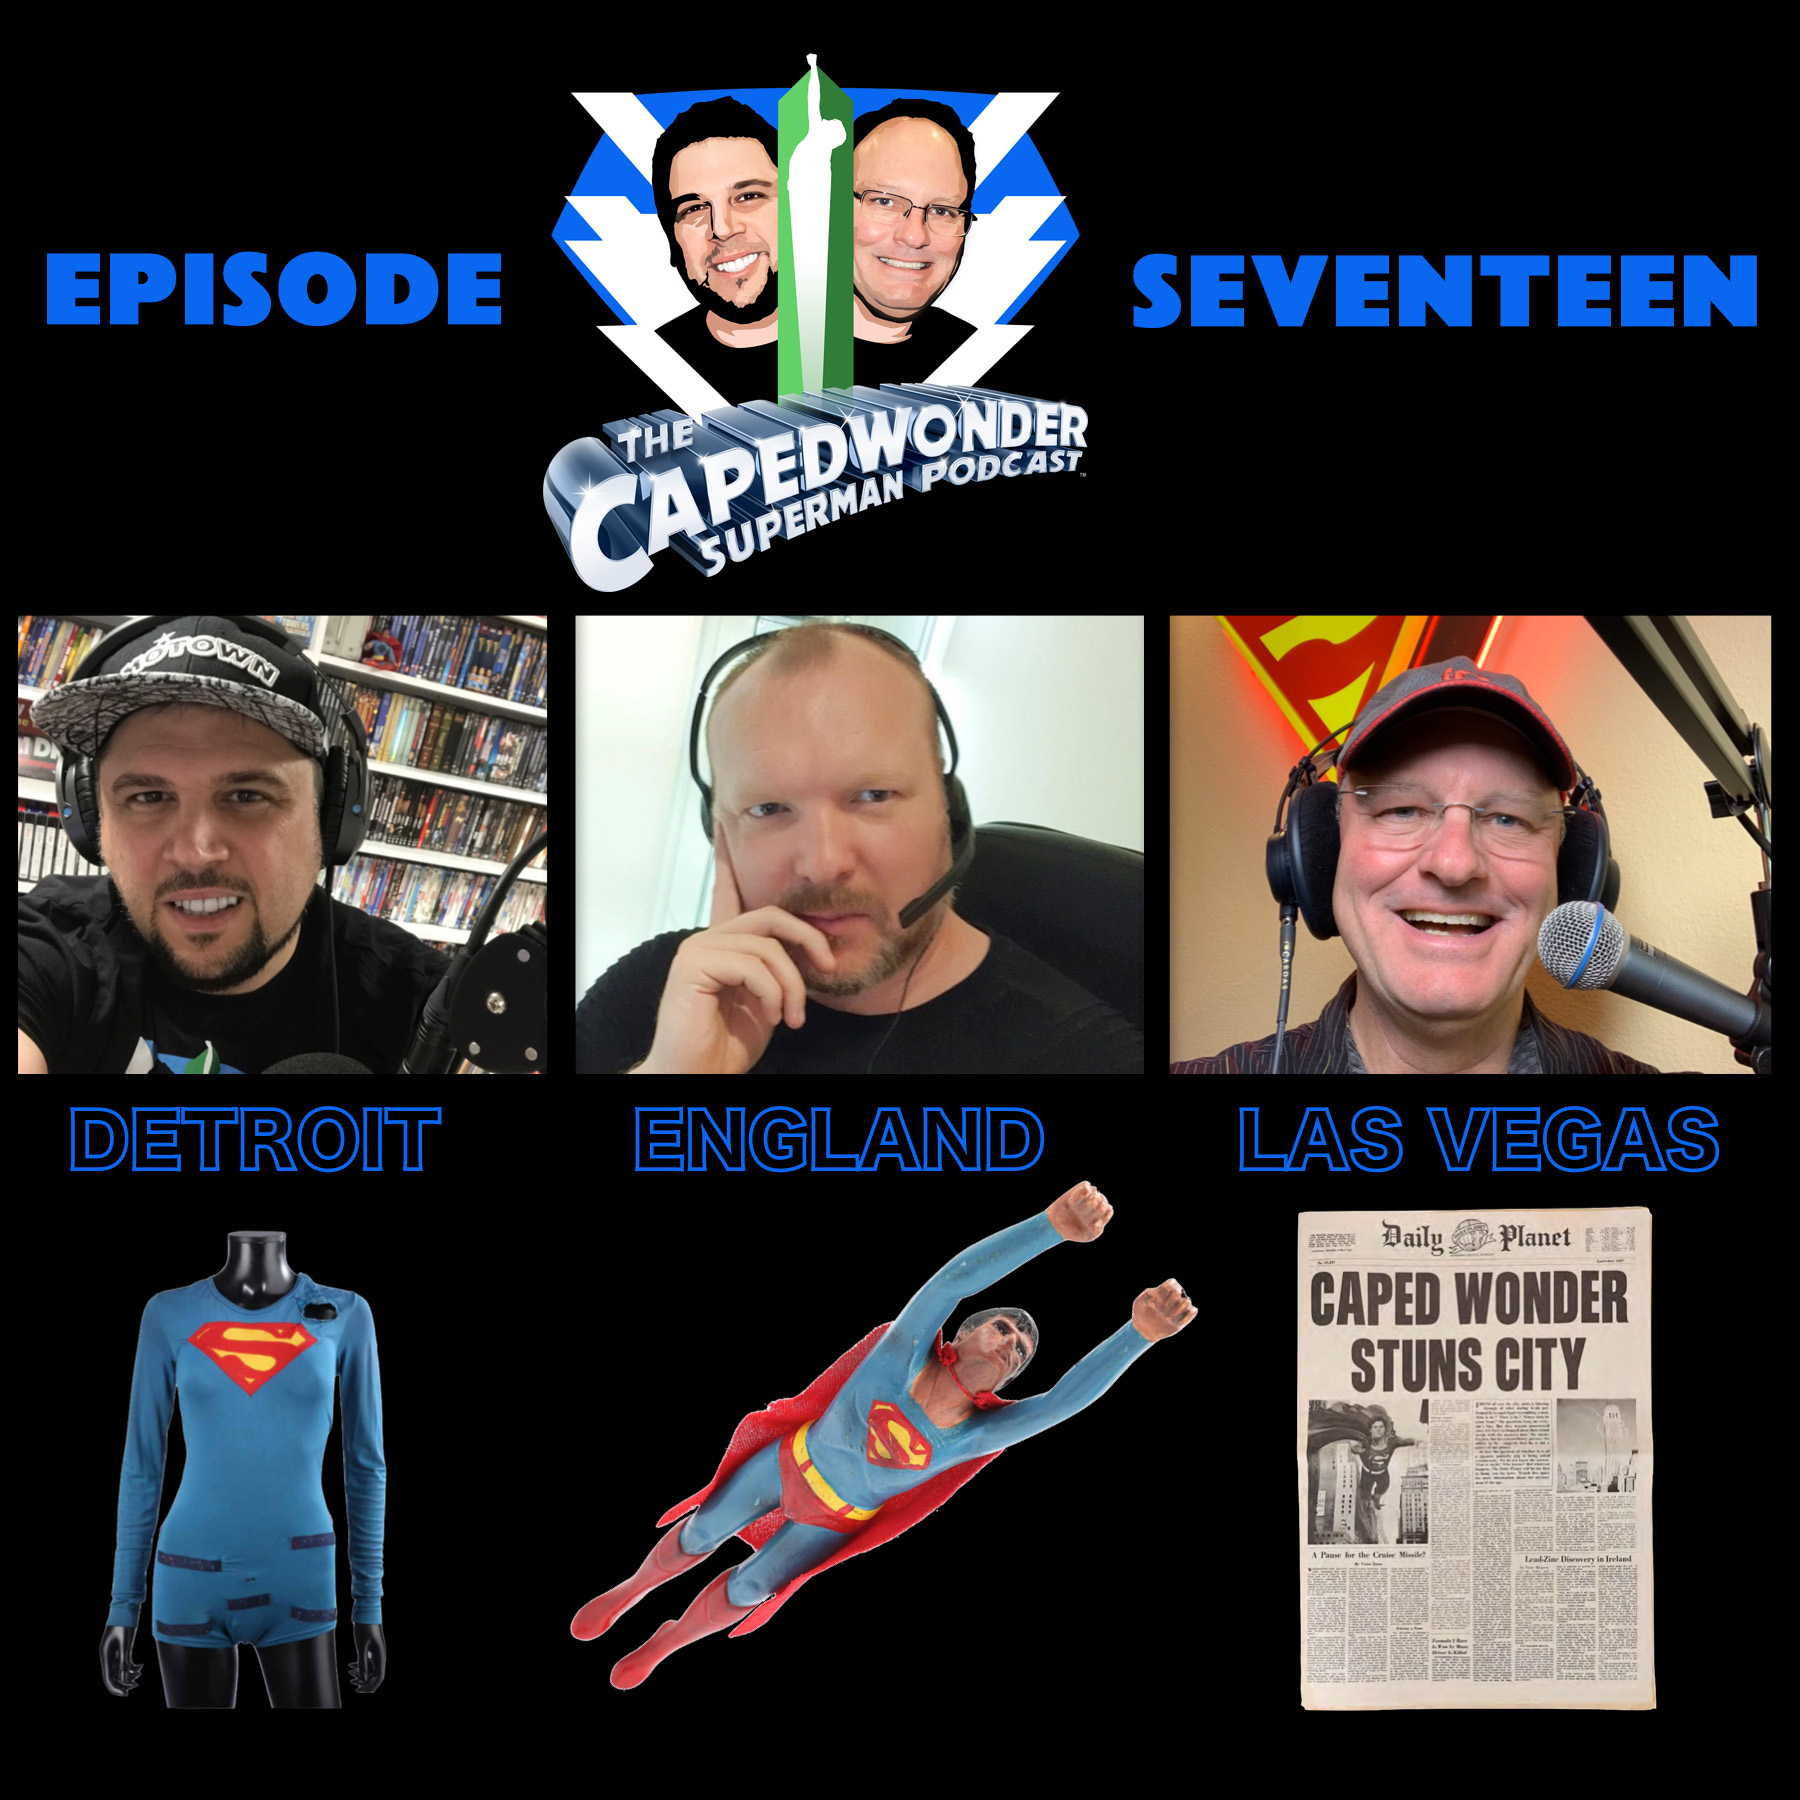 Caped Wonder Superman Podcast Episode #17